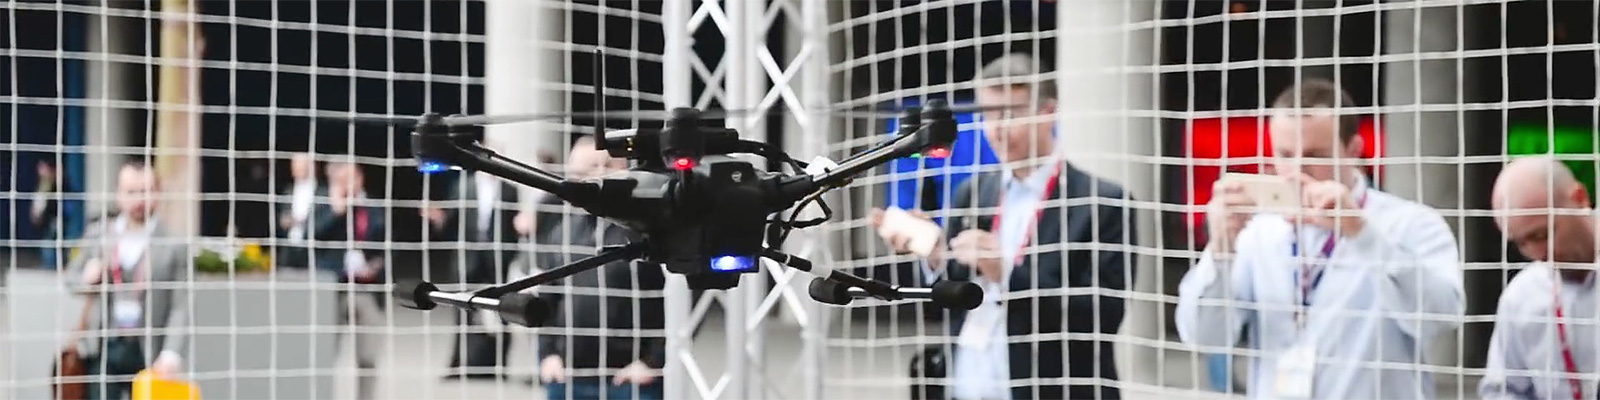 AT&T + Intel = The World's First LTE Connected Drone(AT&T Enterprise)